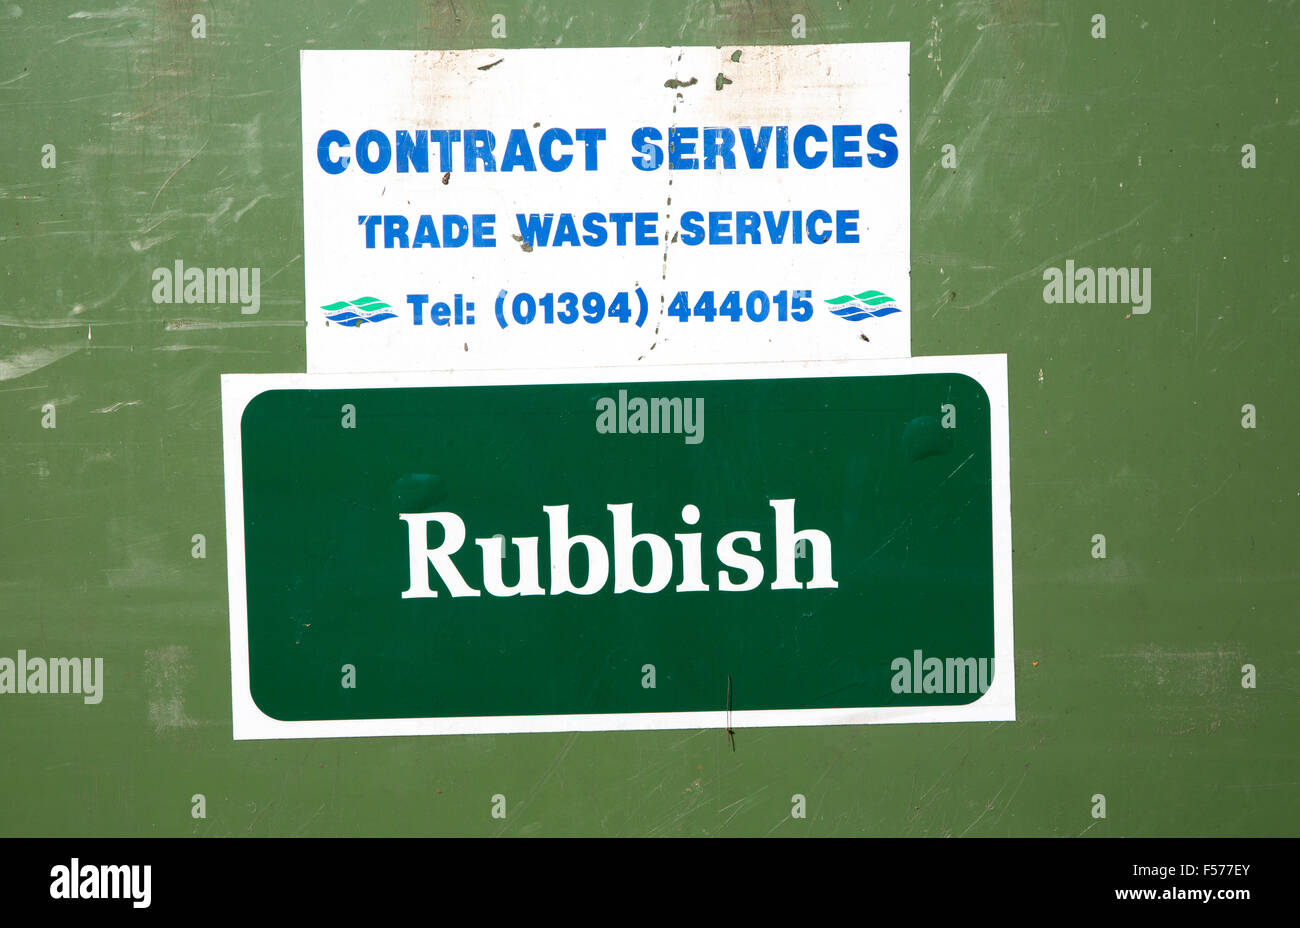 Close up trade waste service sign rubbish collection contract service, Suffolk, England, UK - Stock Image